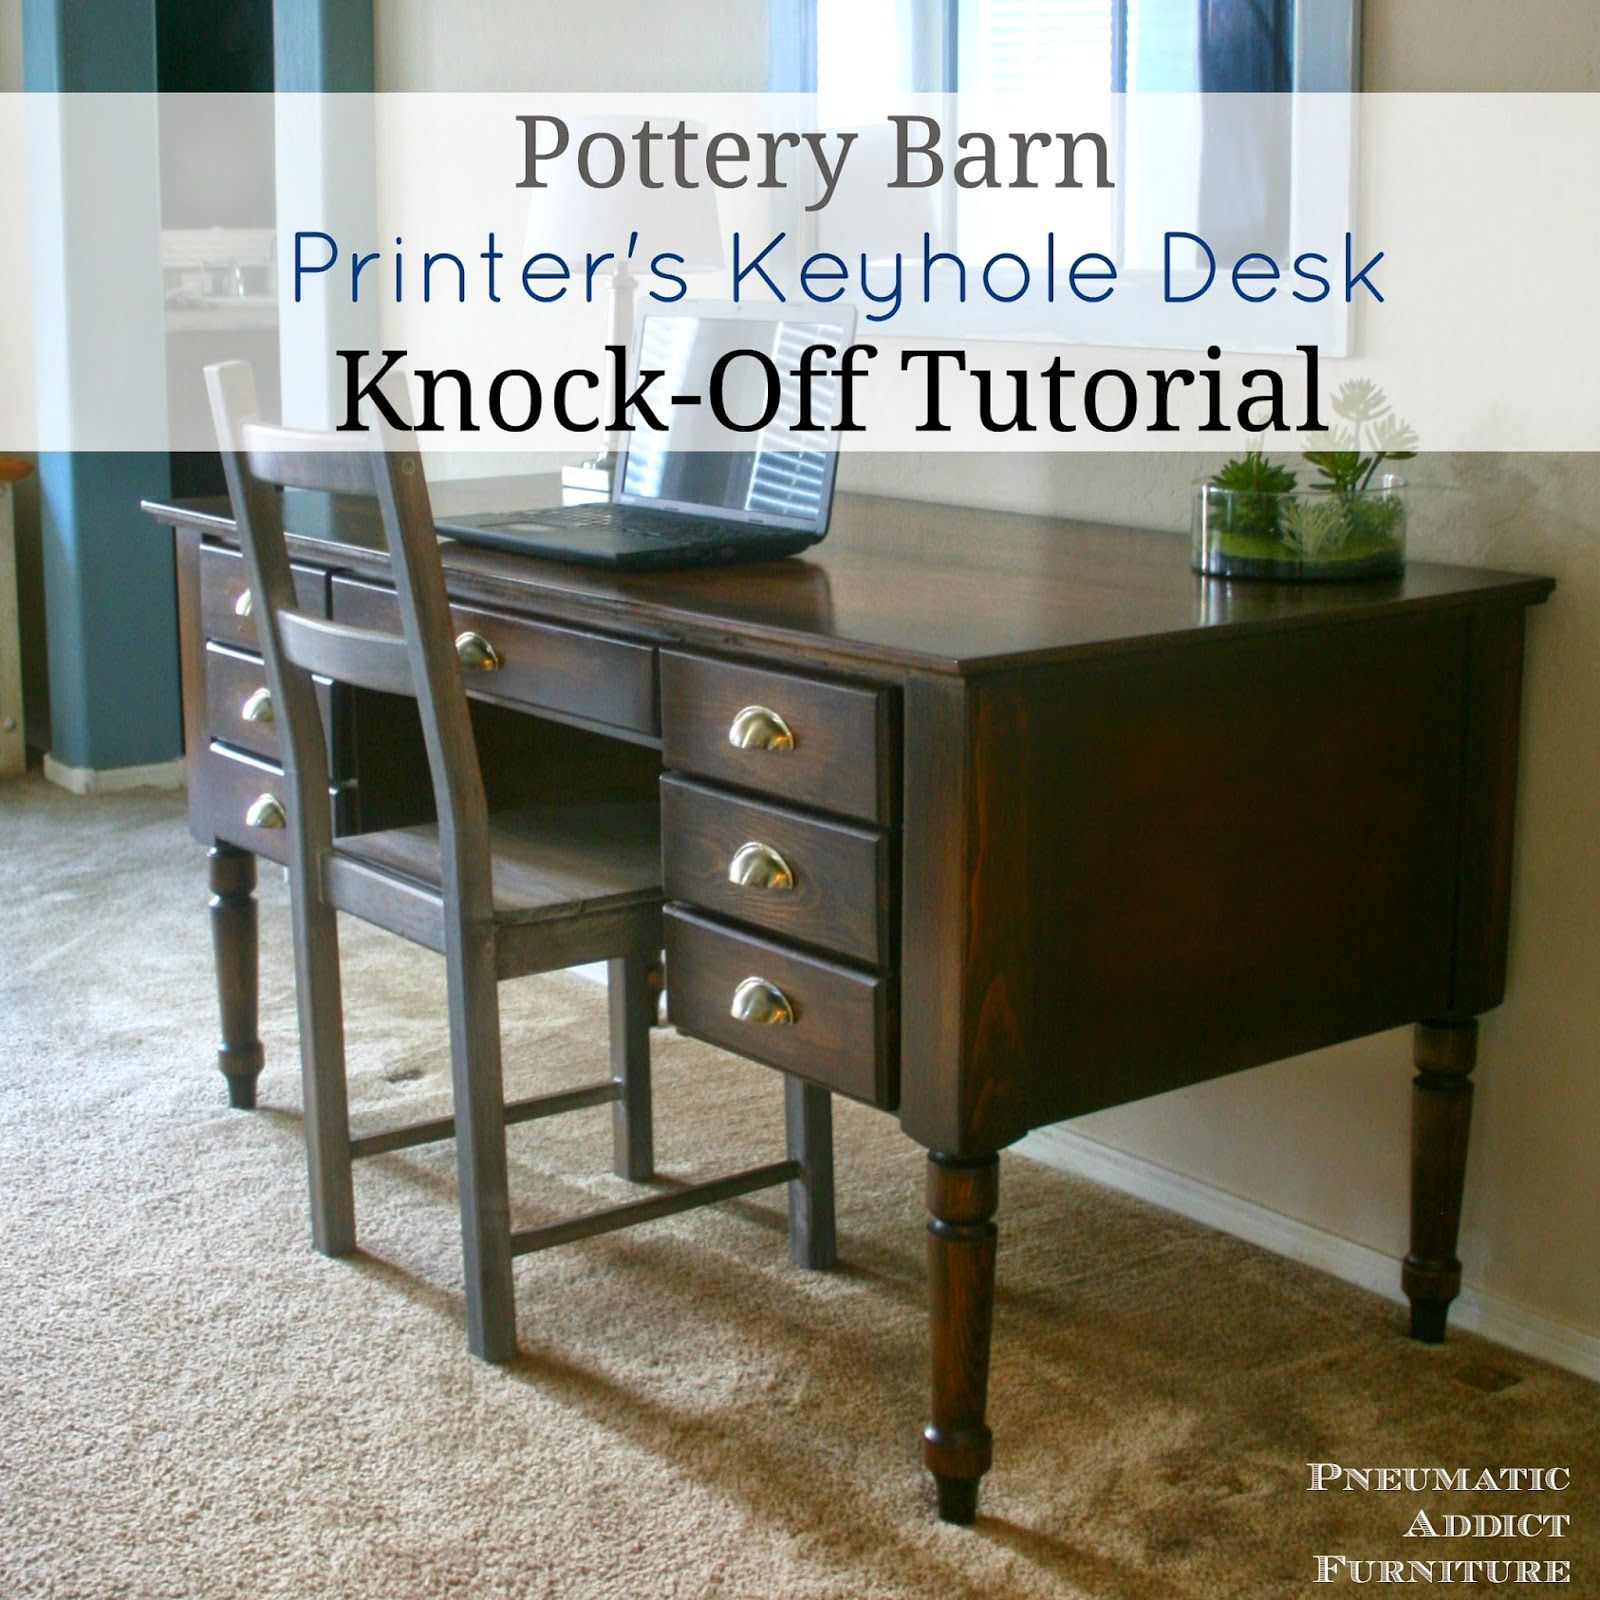 Pneumatic Addict Furniture: Pottery Barn Printeru0027s Keyhole Desk Knock Off  Tutorial